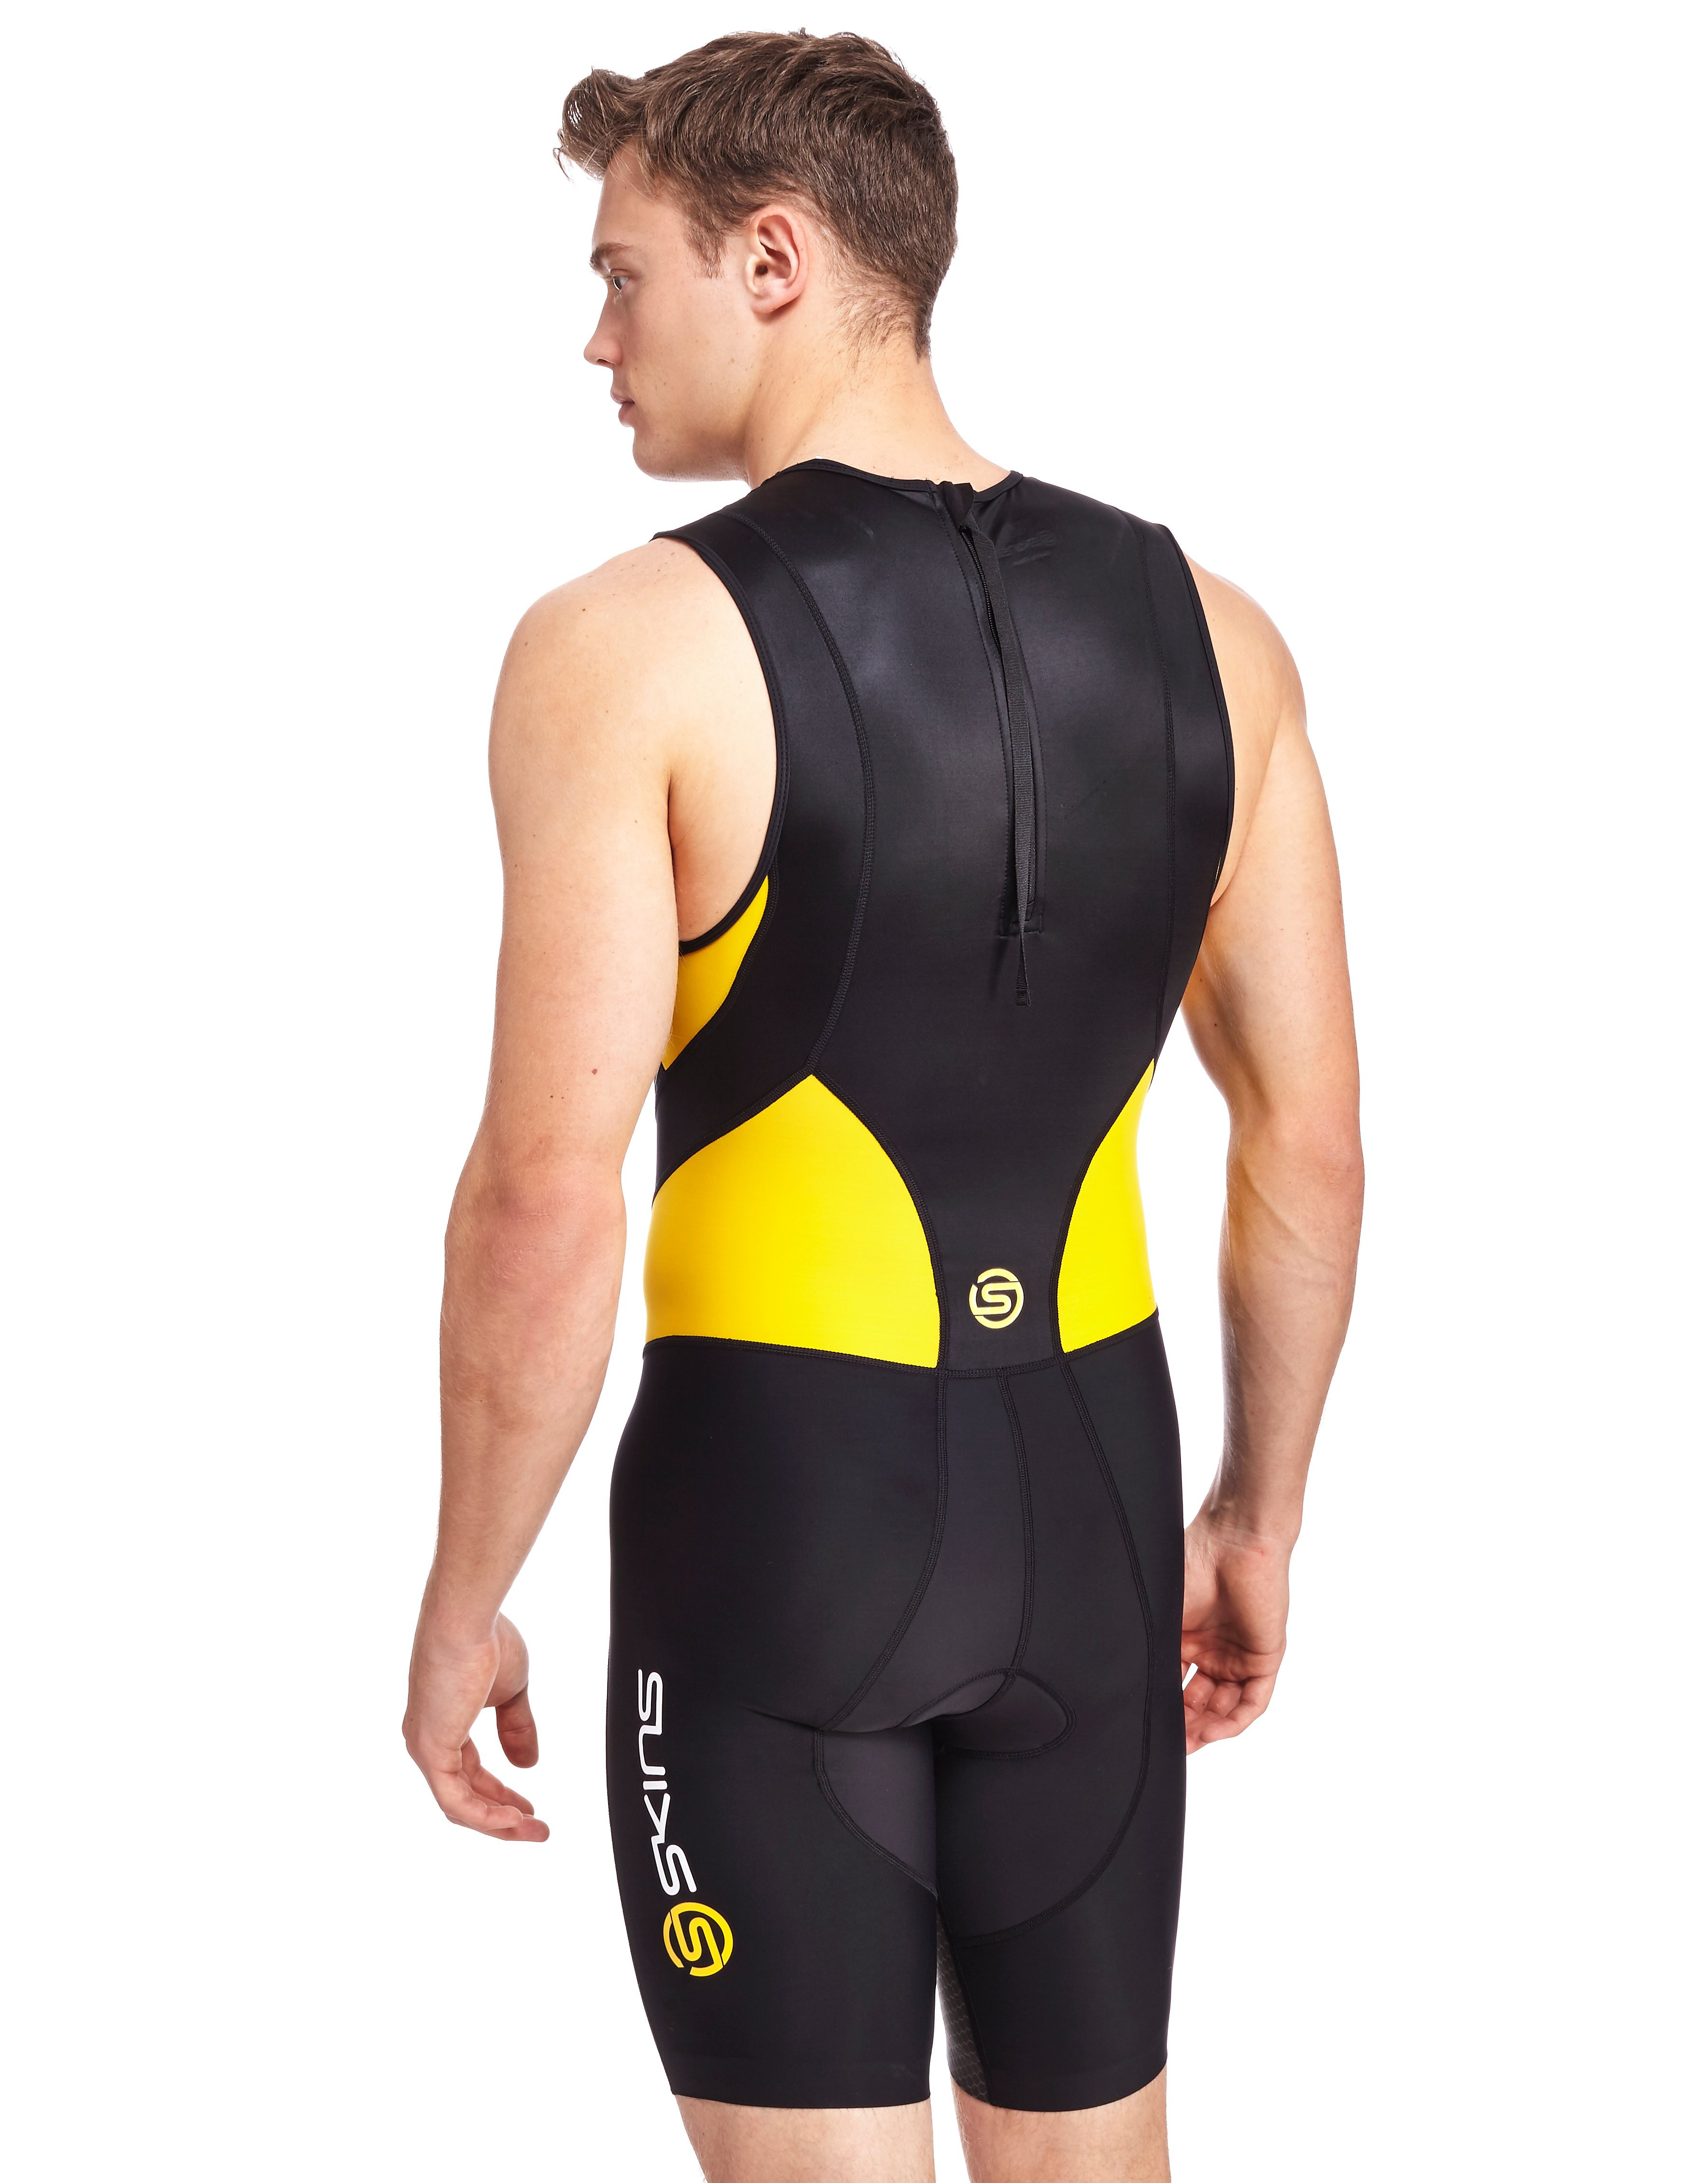 Skins 400 Compression Sleeveless Back Zip Tri Suit